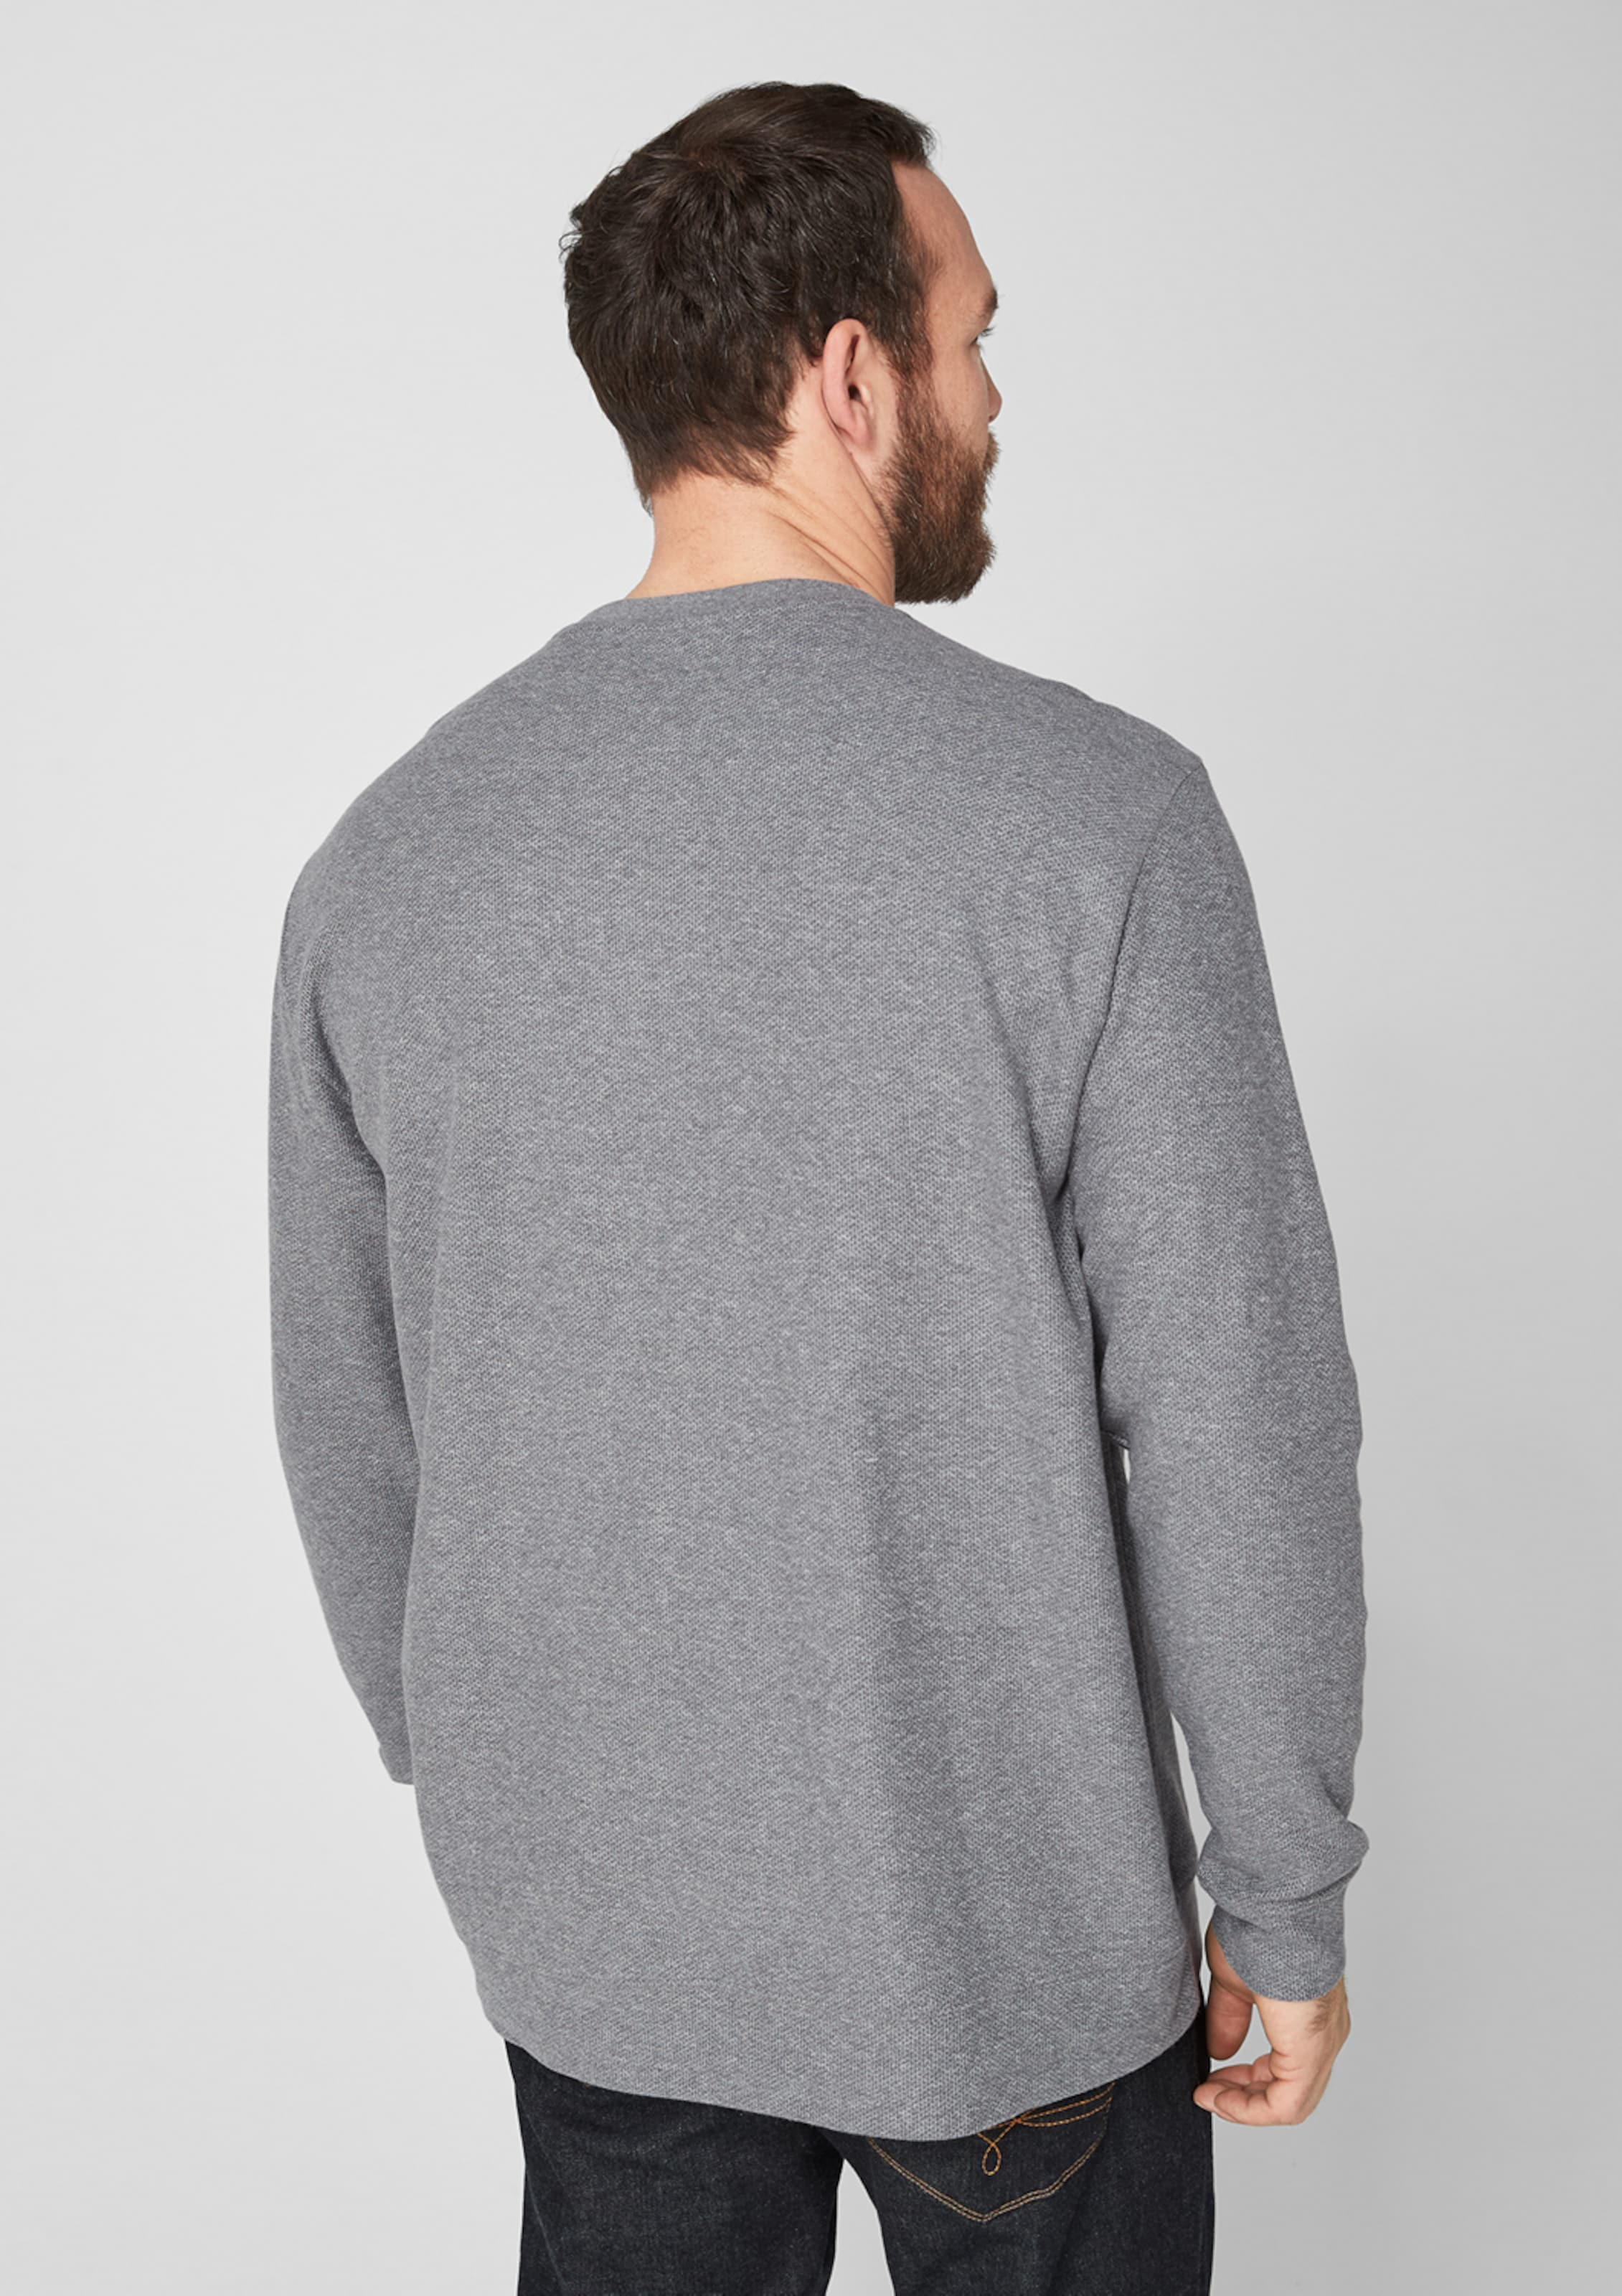 In oliver Pullover S Pullover In S Pullover Grau oliver S oliver Grau Yfyb7g6